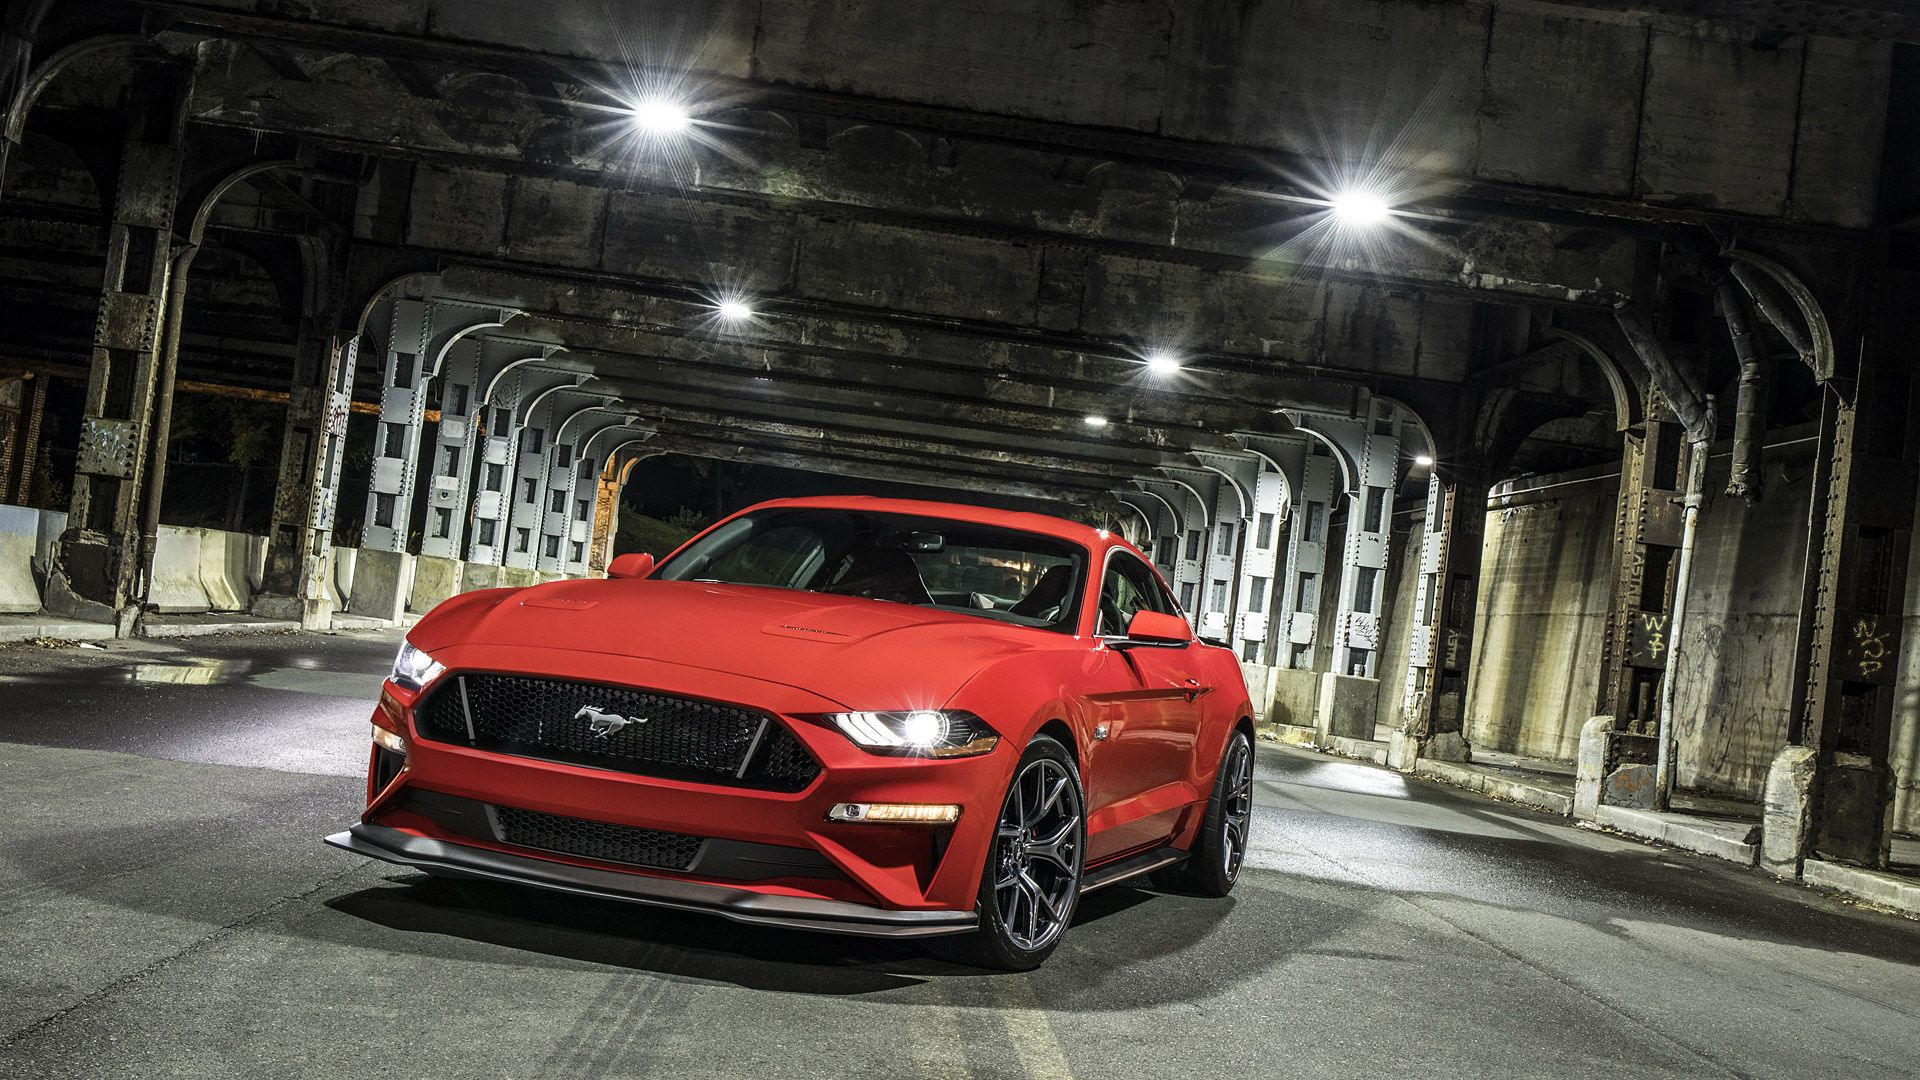 2018 Ford Mustang Gt Performance Pack Level 2 Ford Mustang Gt